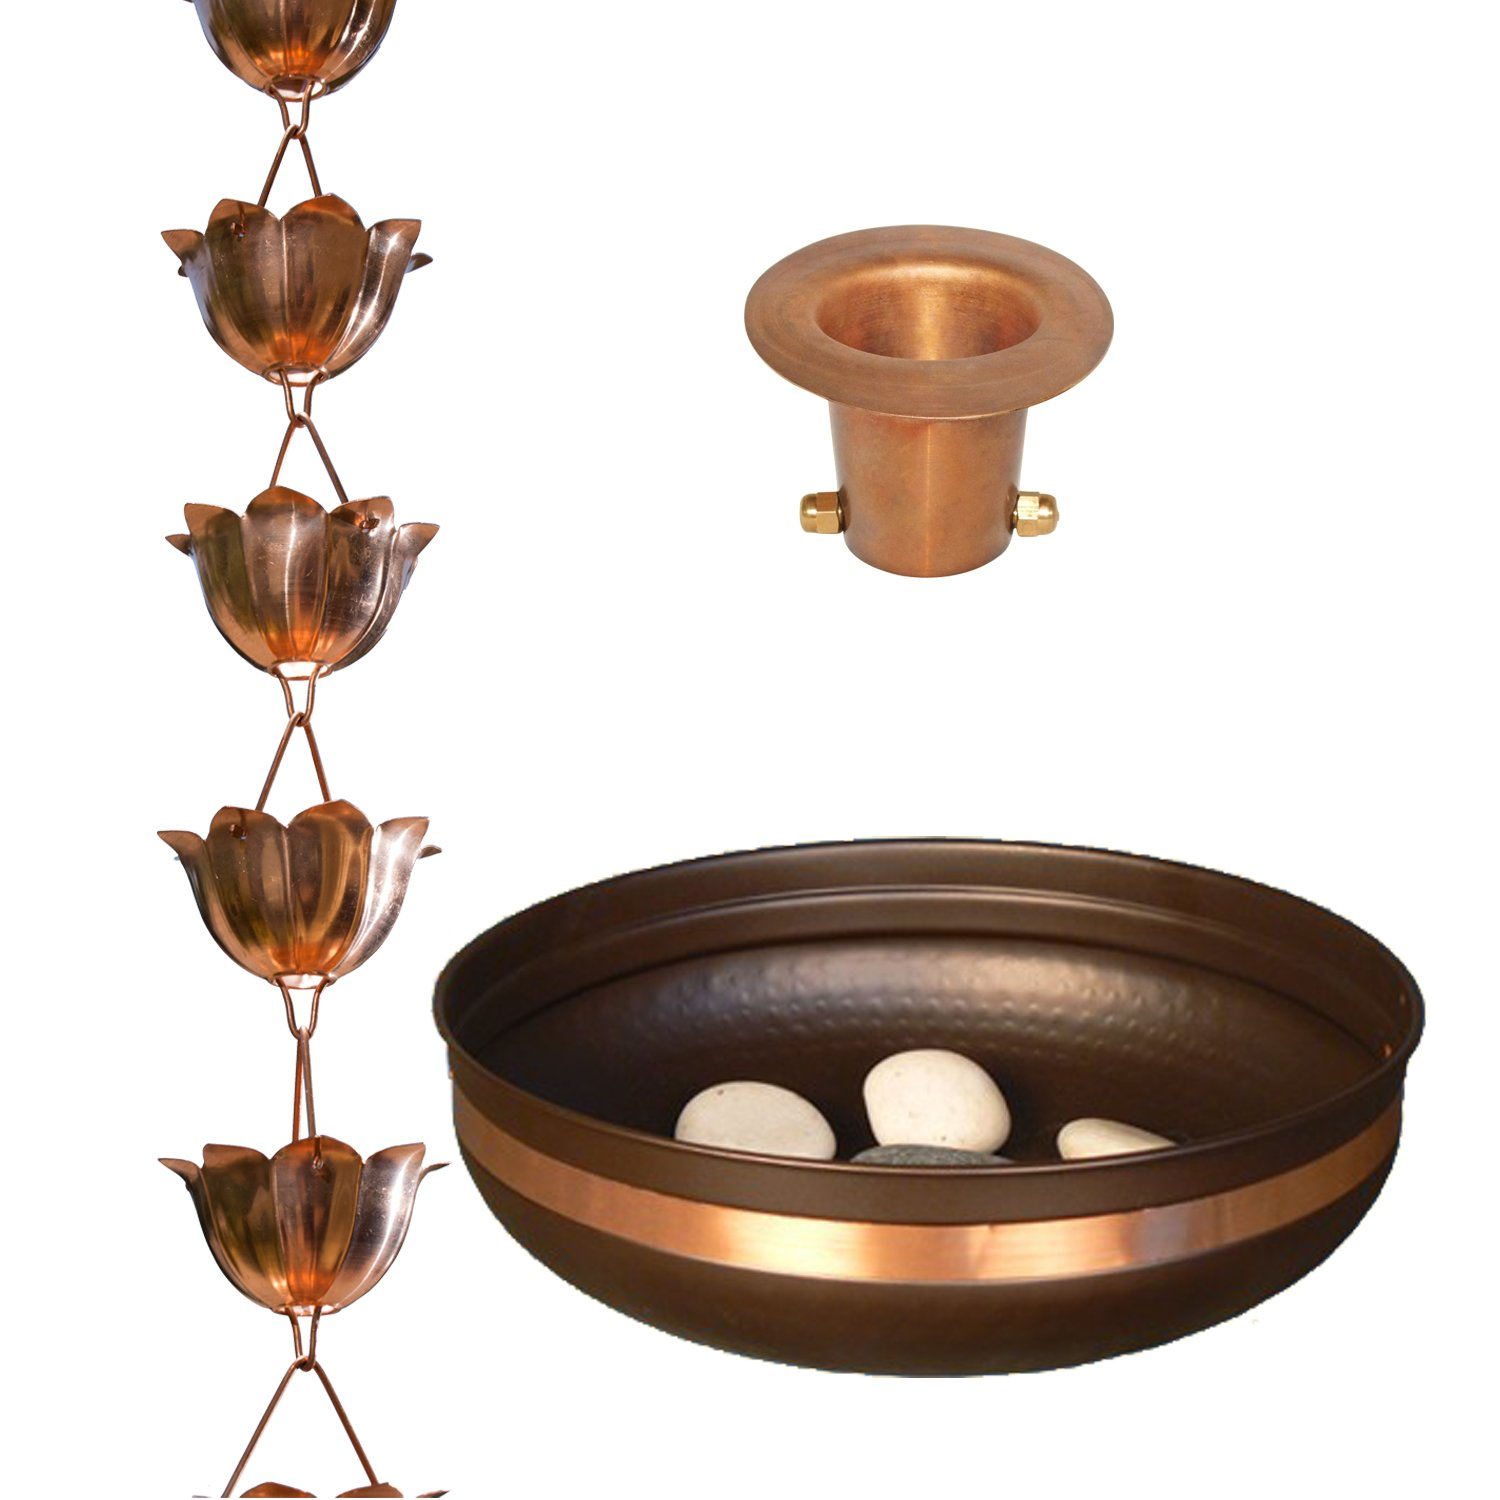 Monarch Pure Copper Lotus Rain Chain Bundle (with Copper Banded Mild Steel Basin and Copper Gutter Reducer for Installation) by Monarch Rain Chains (MNNN9)